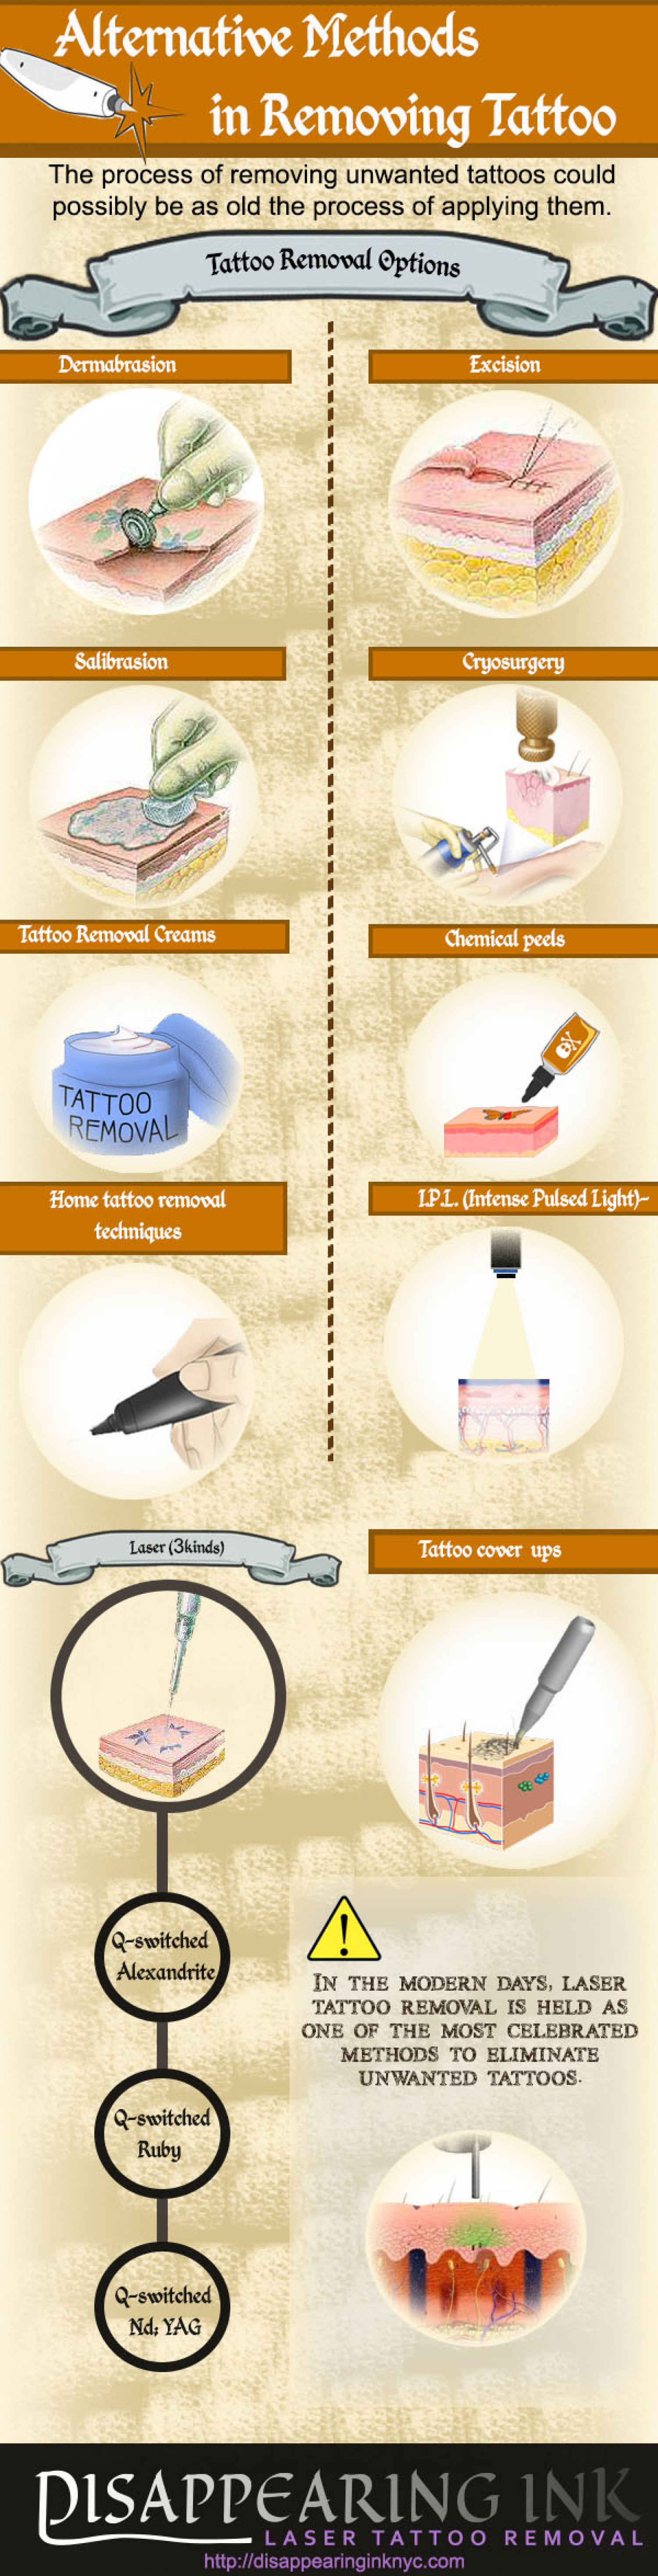 Alternative Methods In Removing Tattoos Infographic